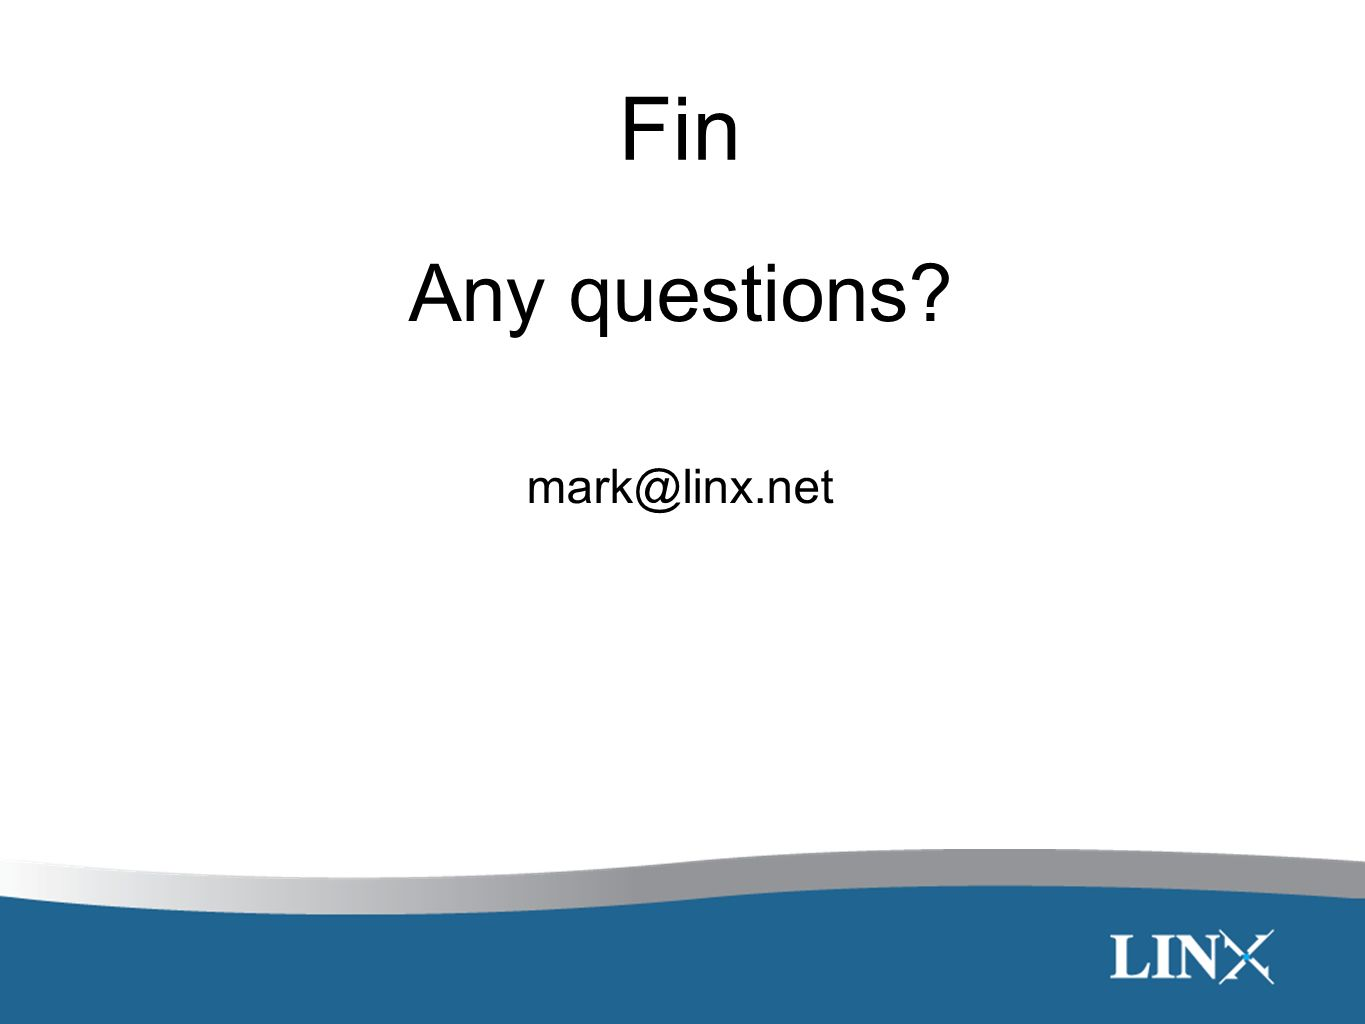 Fin Any questions mark@linx.net